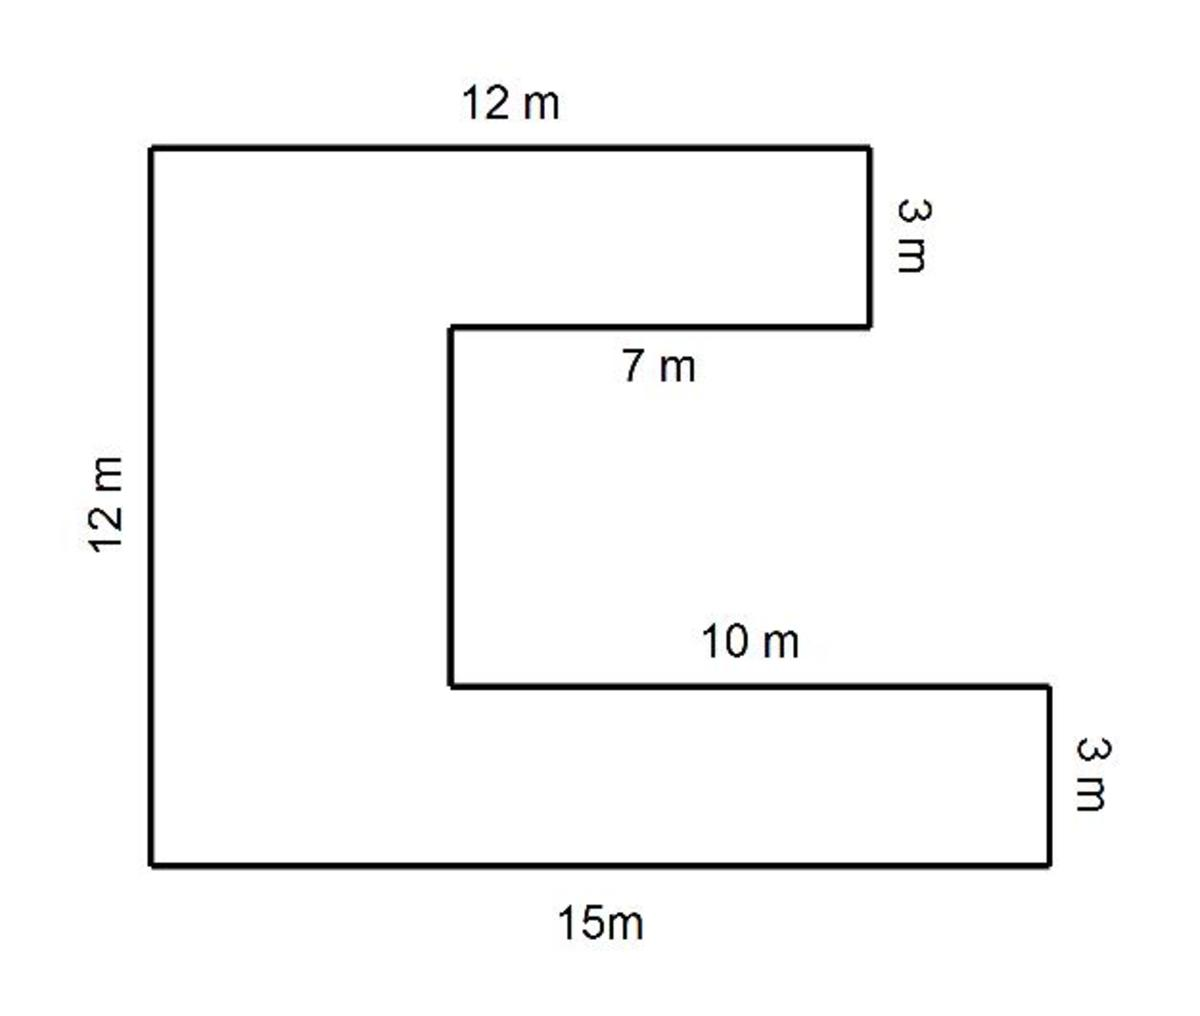 Compound C Shapes: How to Calculate the Perimeter and Area of a C Shape.